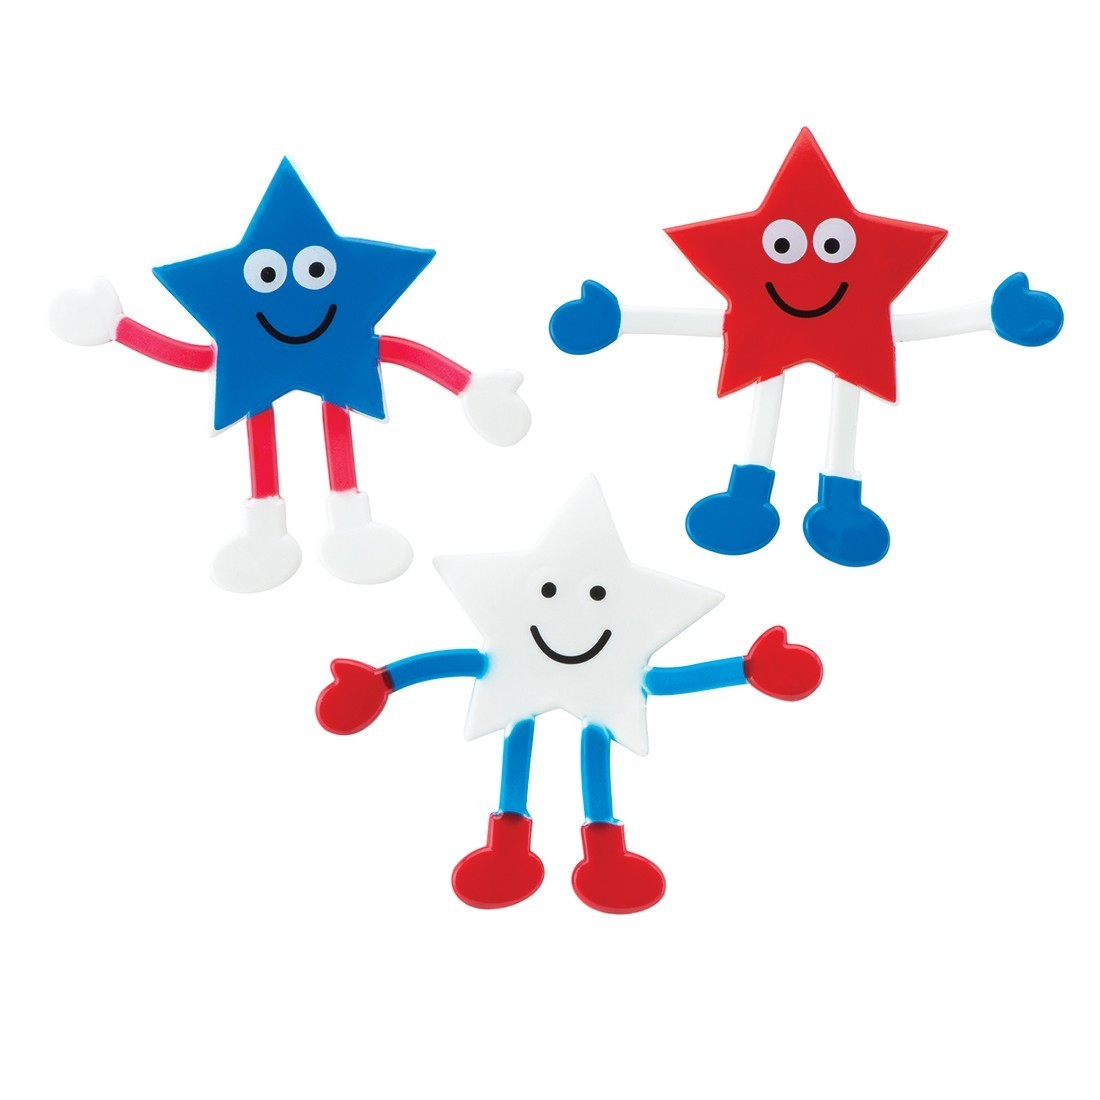 Patriotic Star Bendable Characters [image]